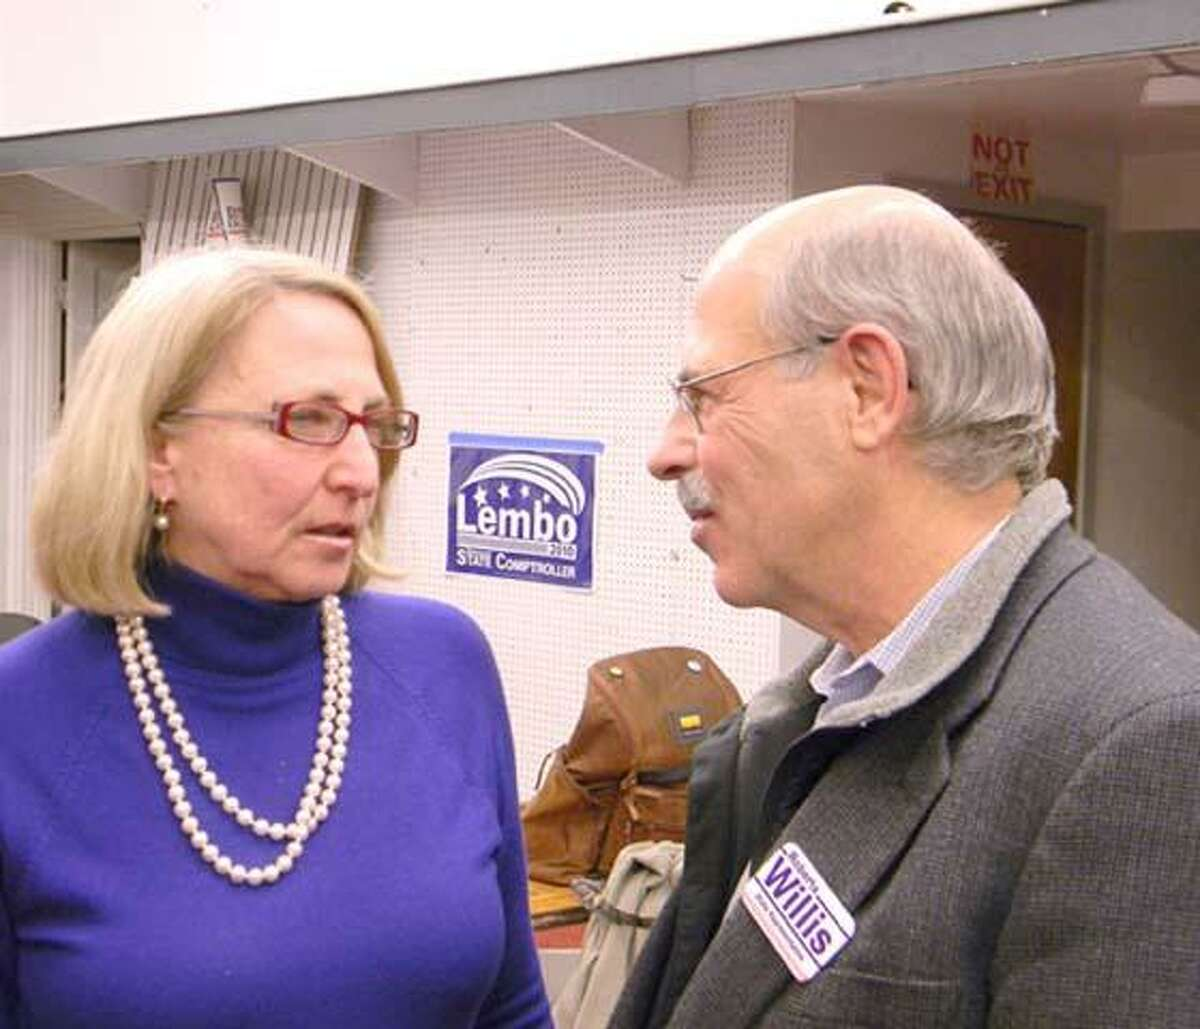 MIKE AGOGLIATI/ Register CitizenState Rep. Roberta Willis, D-64 talks with her husband, Bill, while the two wait for election results to filter in. Willis won re-election and will serve a 6th term as state Rep.